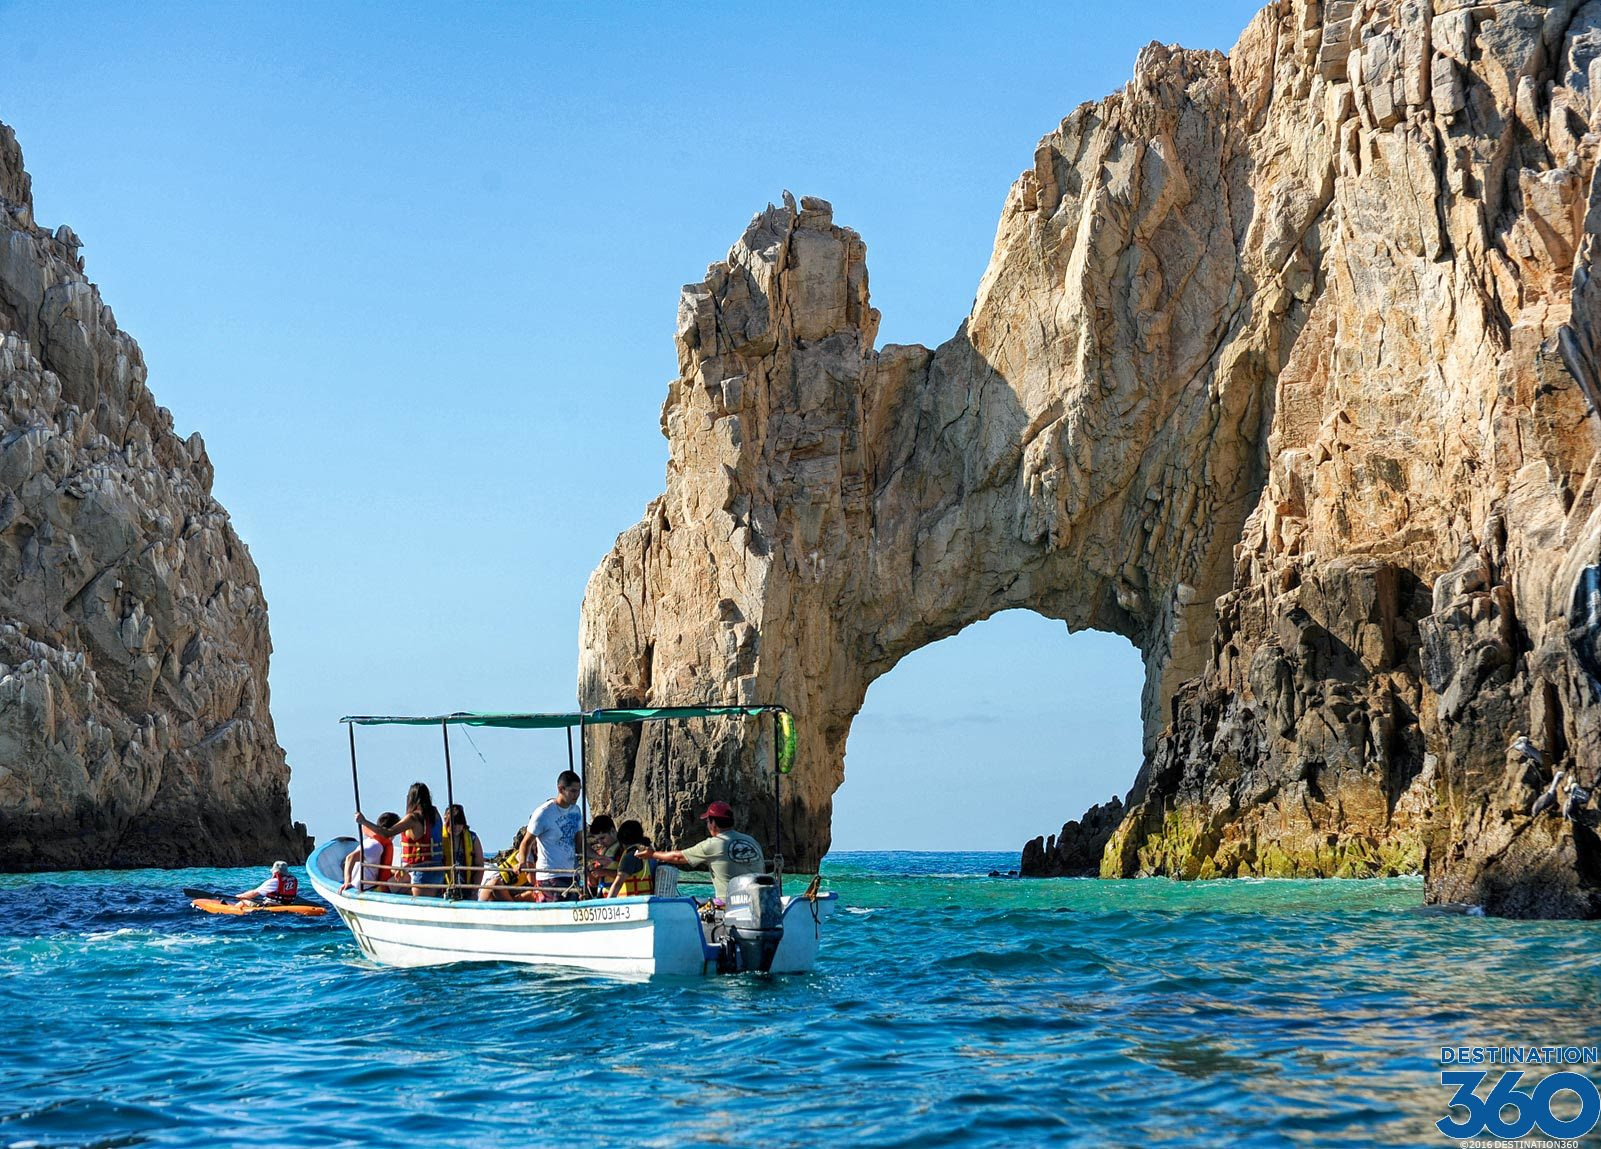 Mexico Vacation Ideas - Best Destinations in Mexico